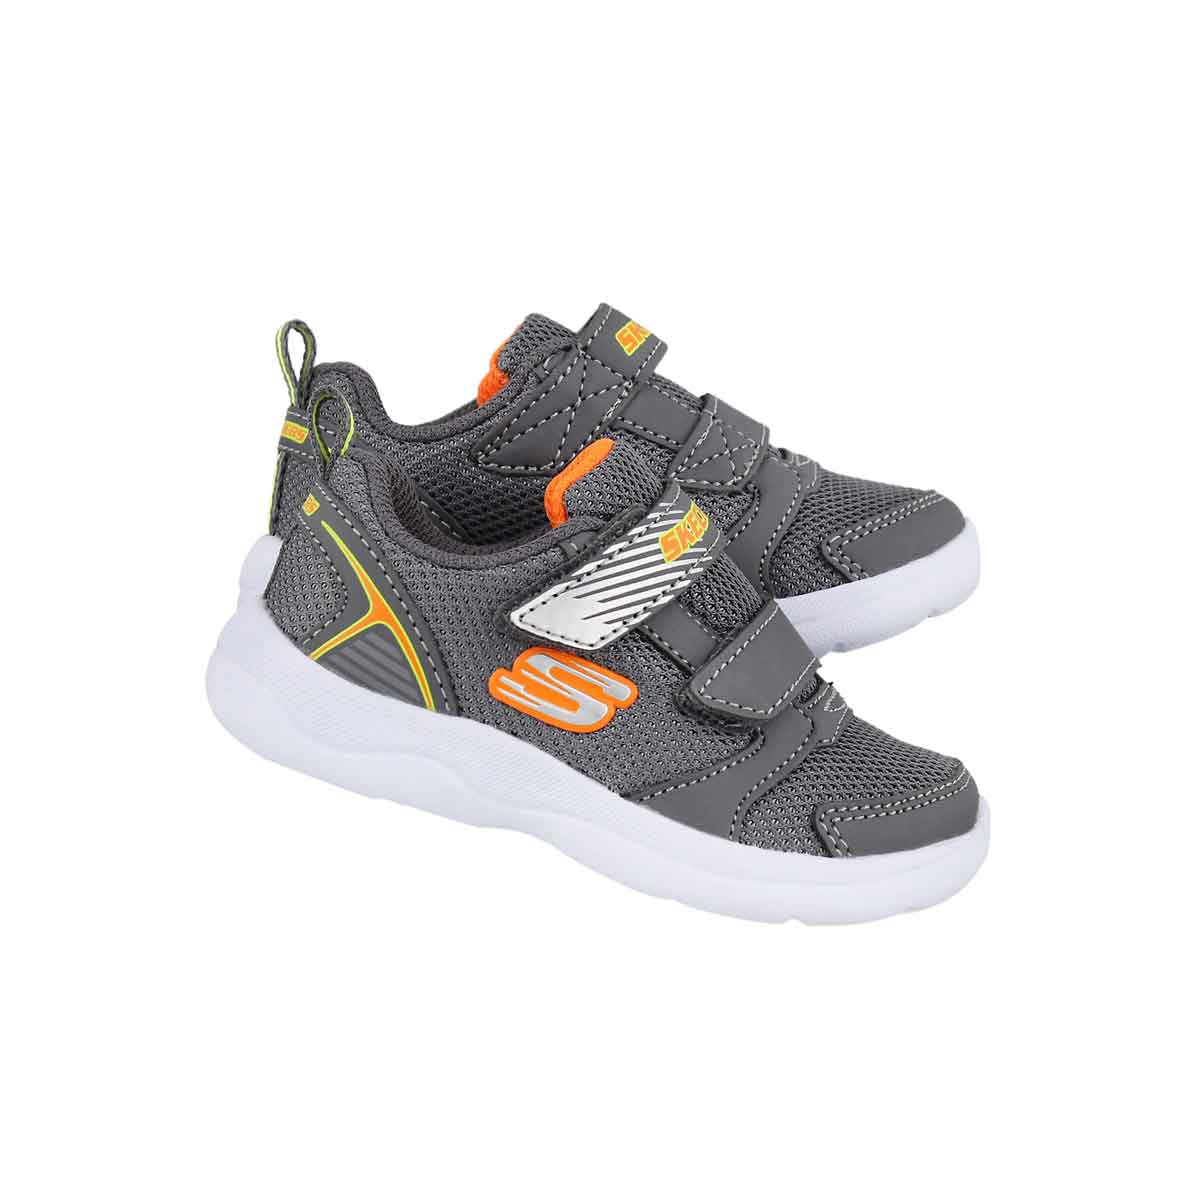 Inf-b Skech-Stepz 2.0 char/orng sneaker